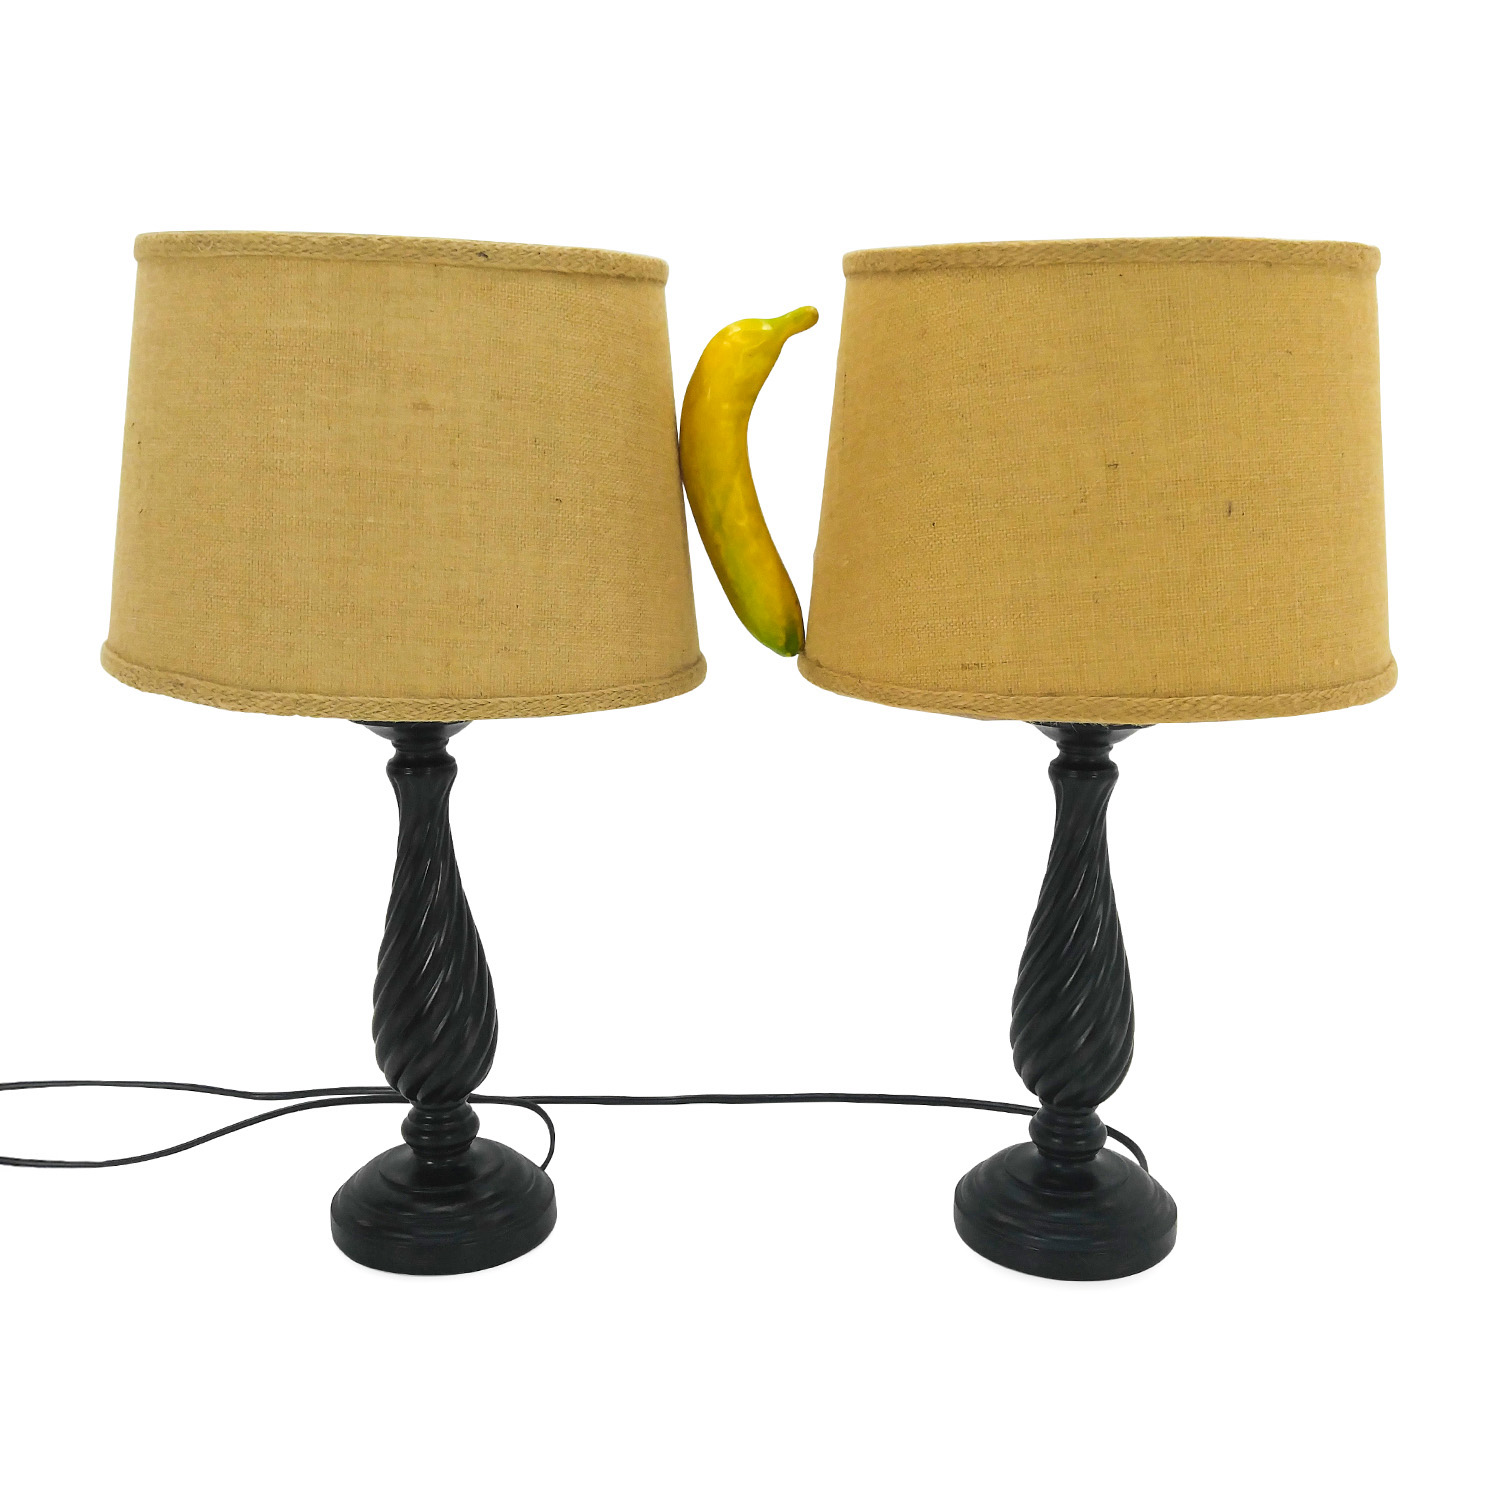 Table Lamps Target 86 Off Target Twin Table Lamps Decor